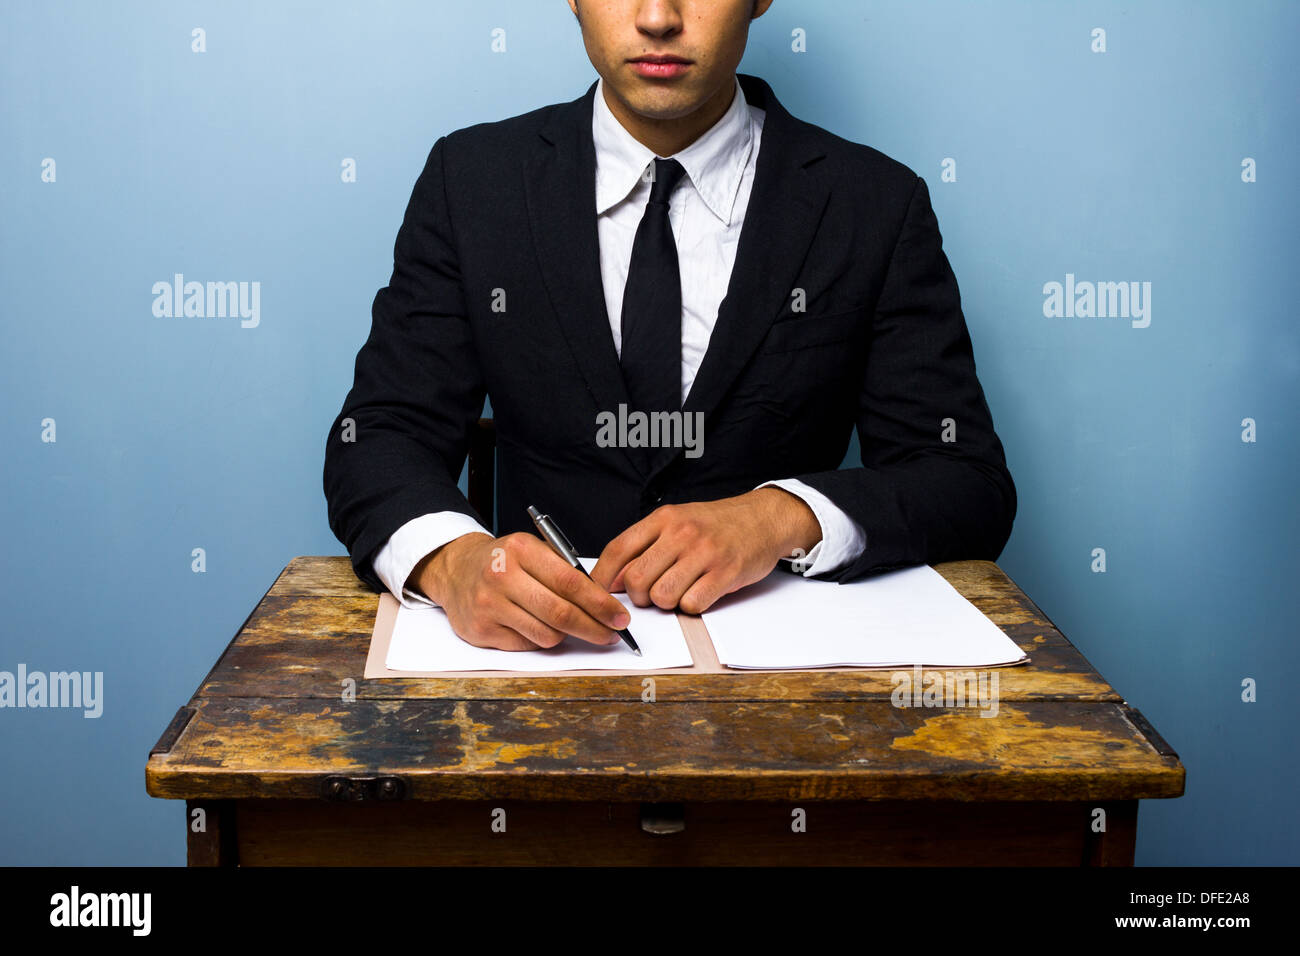 Young businessman is sitting at an old desk and signing a contract - Stock Image